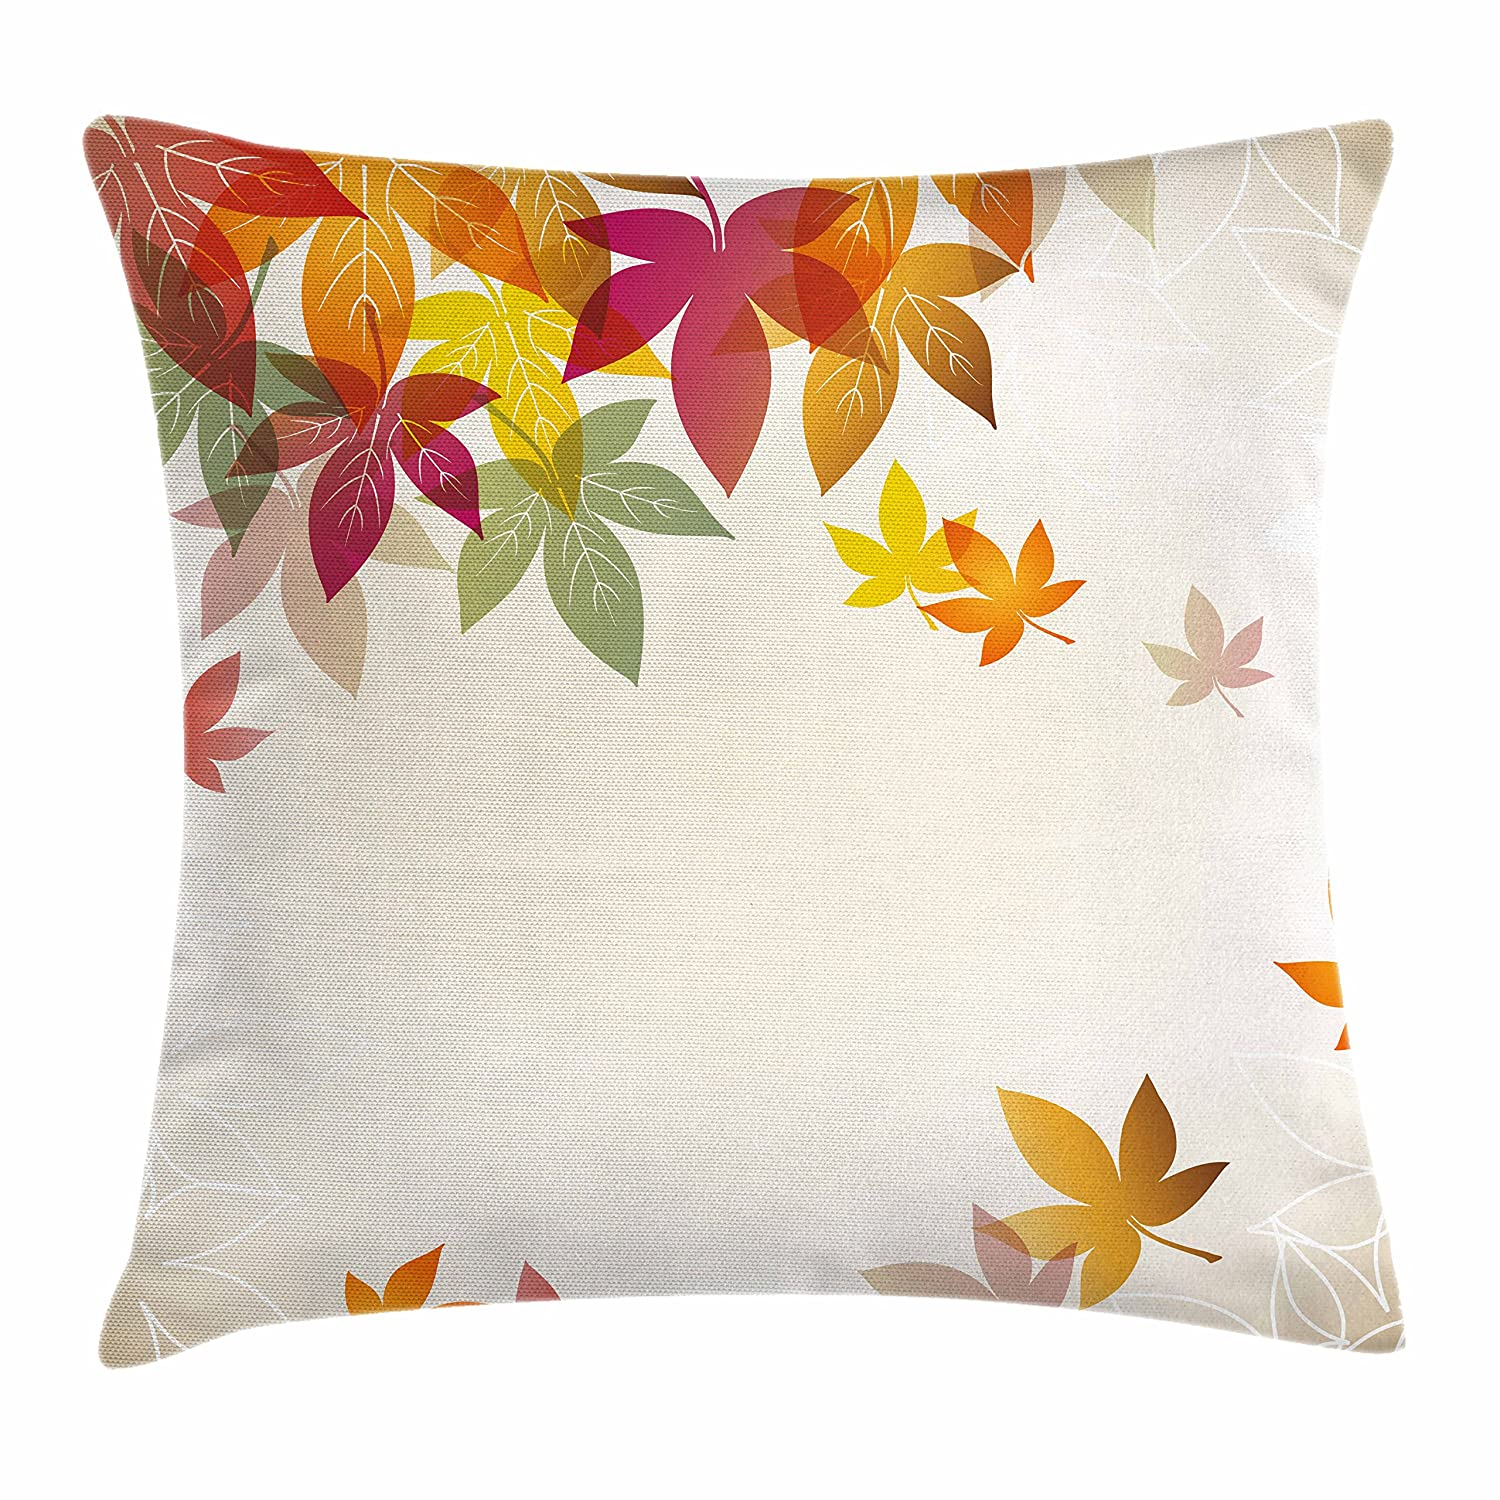 "Ambesonne Fall Throw Pillow Cushion Cover, Silhouettes of Maple Tree Leaves in Pastel Colors Classical Shady Nature Graphic Image, Decorative Square Accent Pillow Case, 20"" X 20"", Pastel Colors"